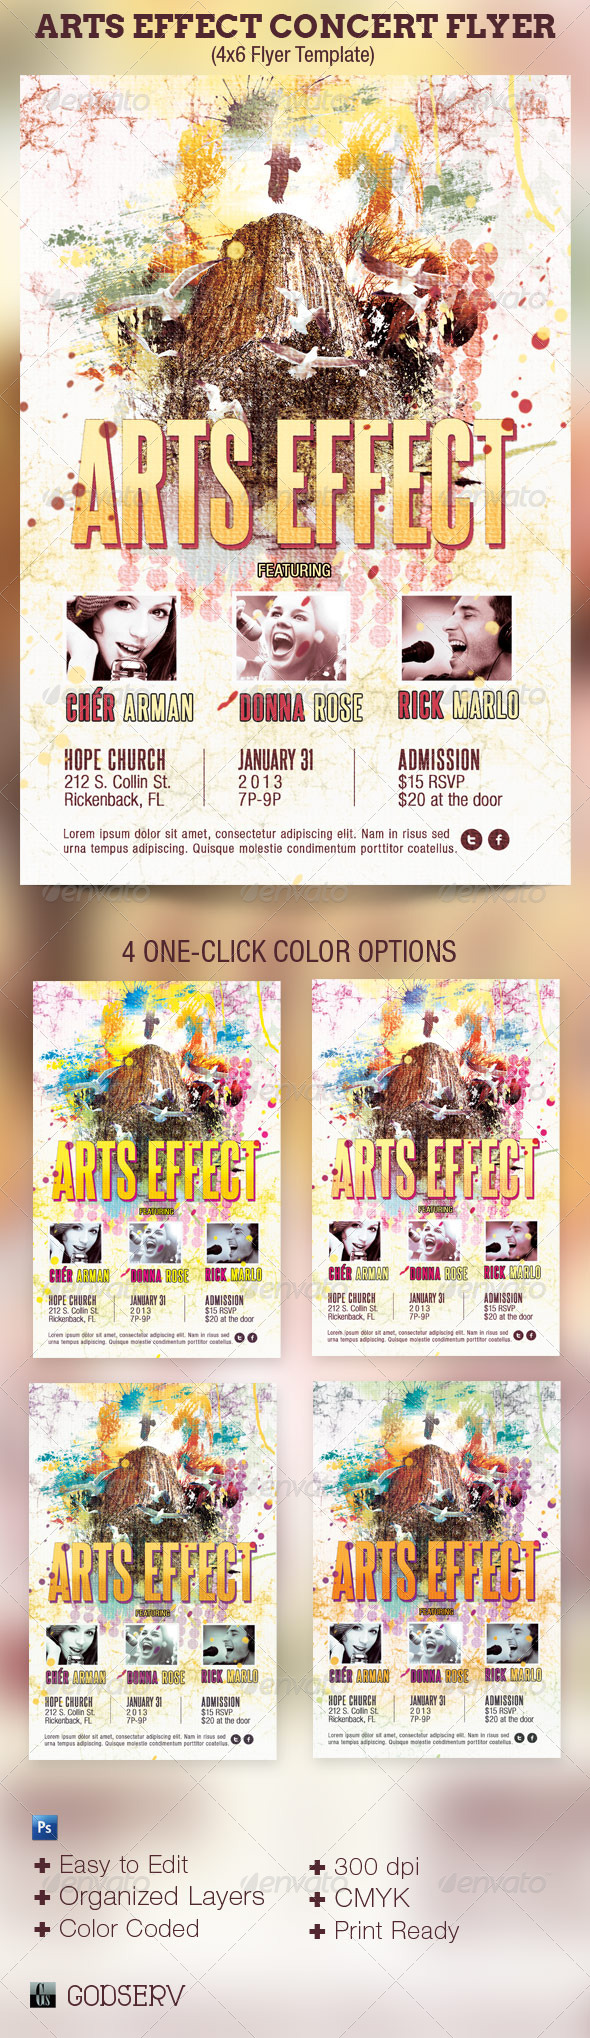 Arts Effect Flyer Template - Concerts Events